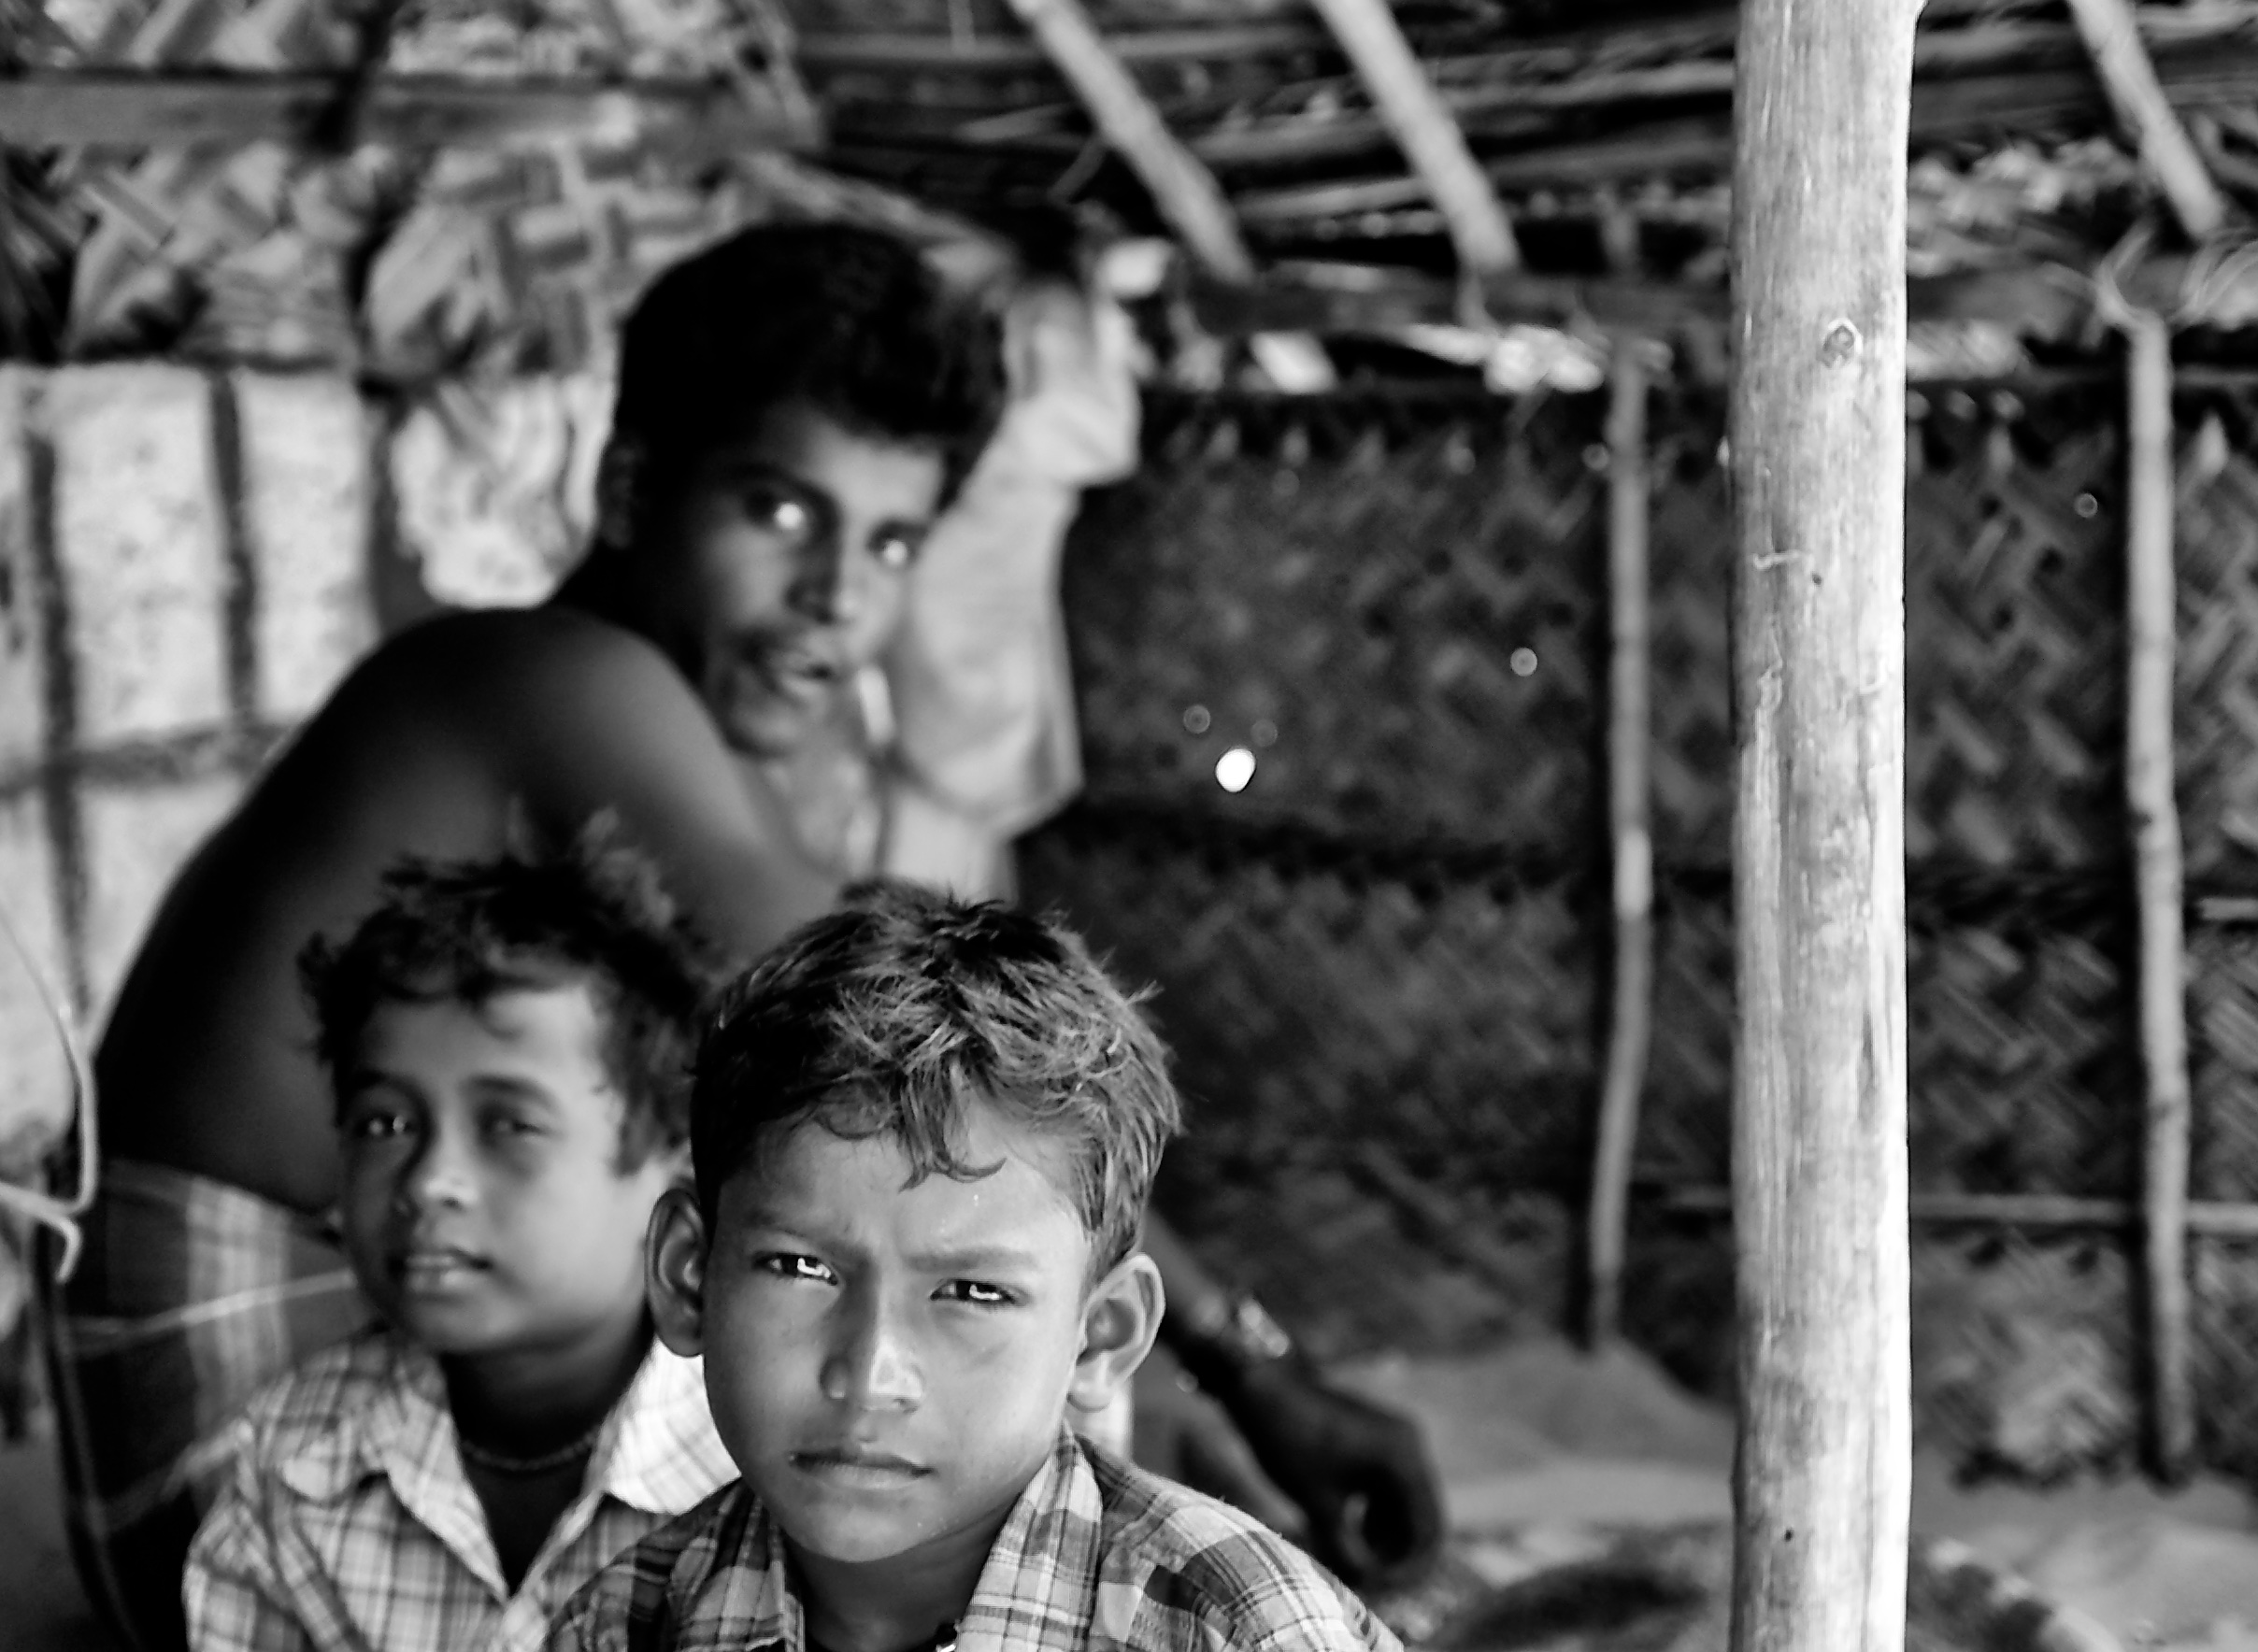 Young boys inside the fishermen's hut, Dhanuskodi, Tamil Nadu, India